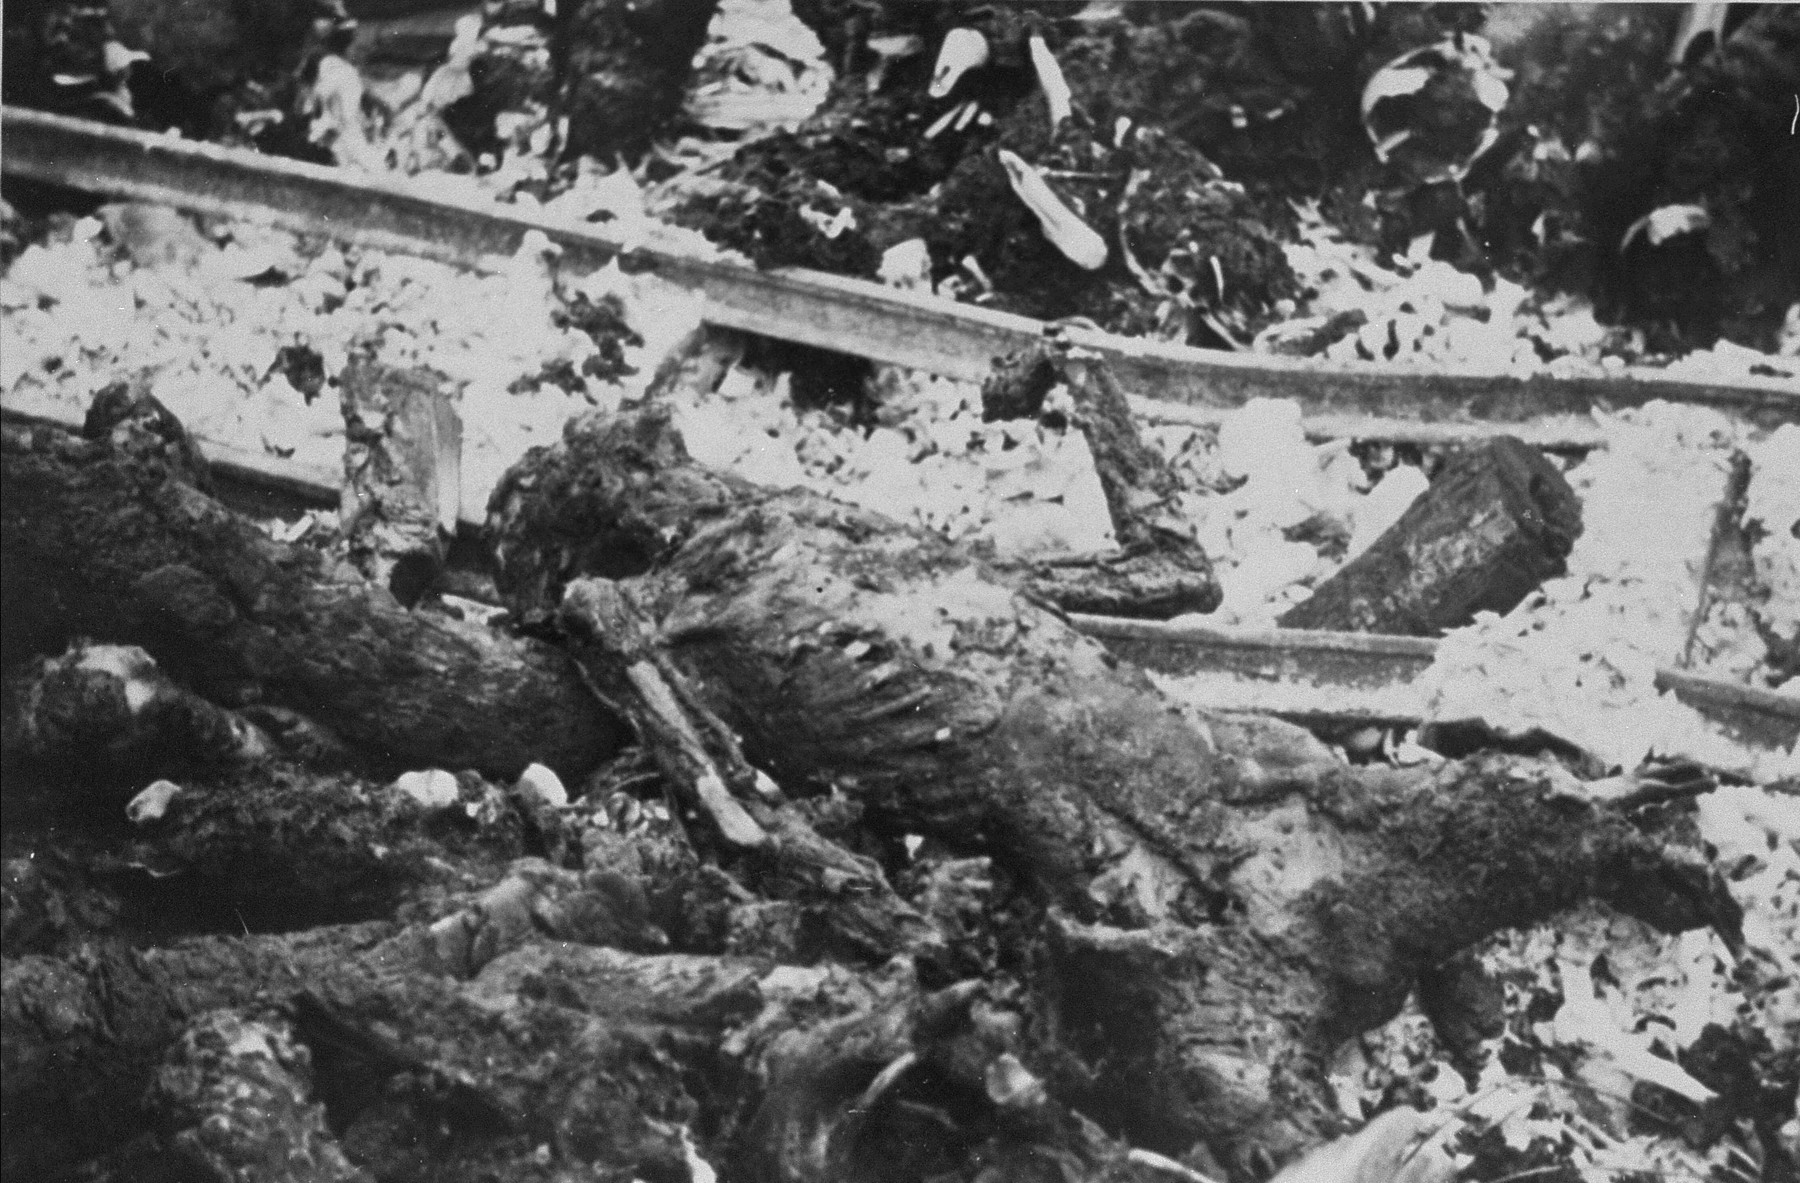 The charred corpses of prisoners burned by the SS prior to the evacuation of Ohrdruf.